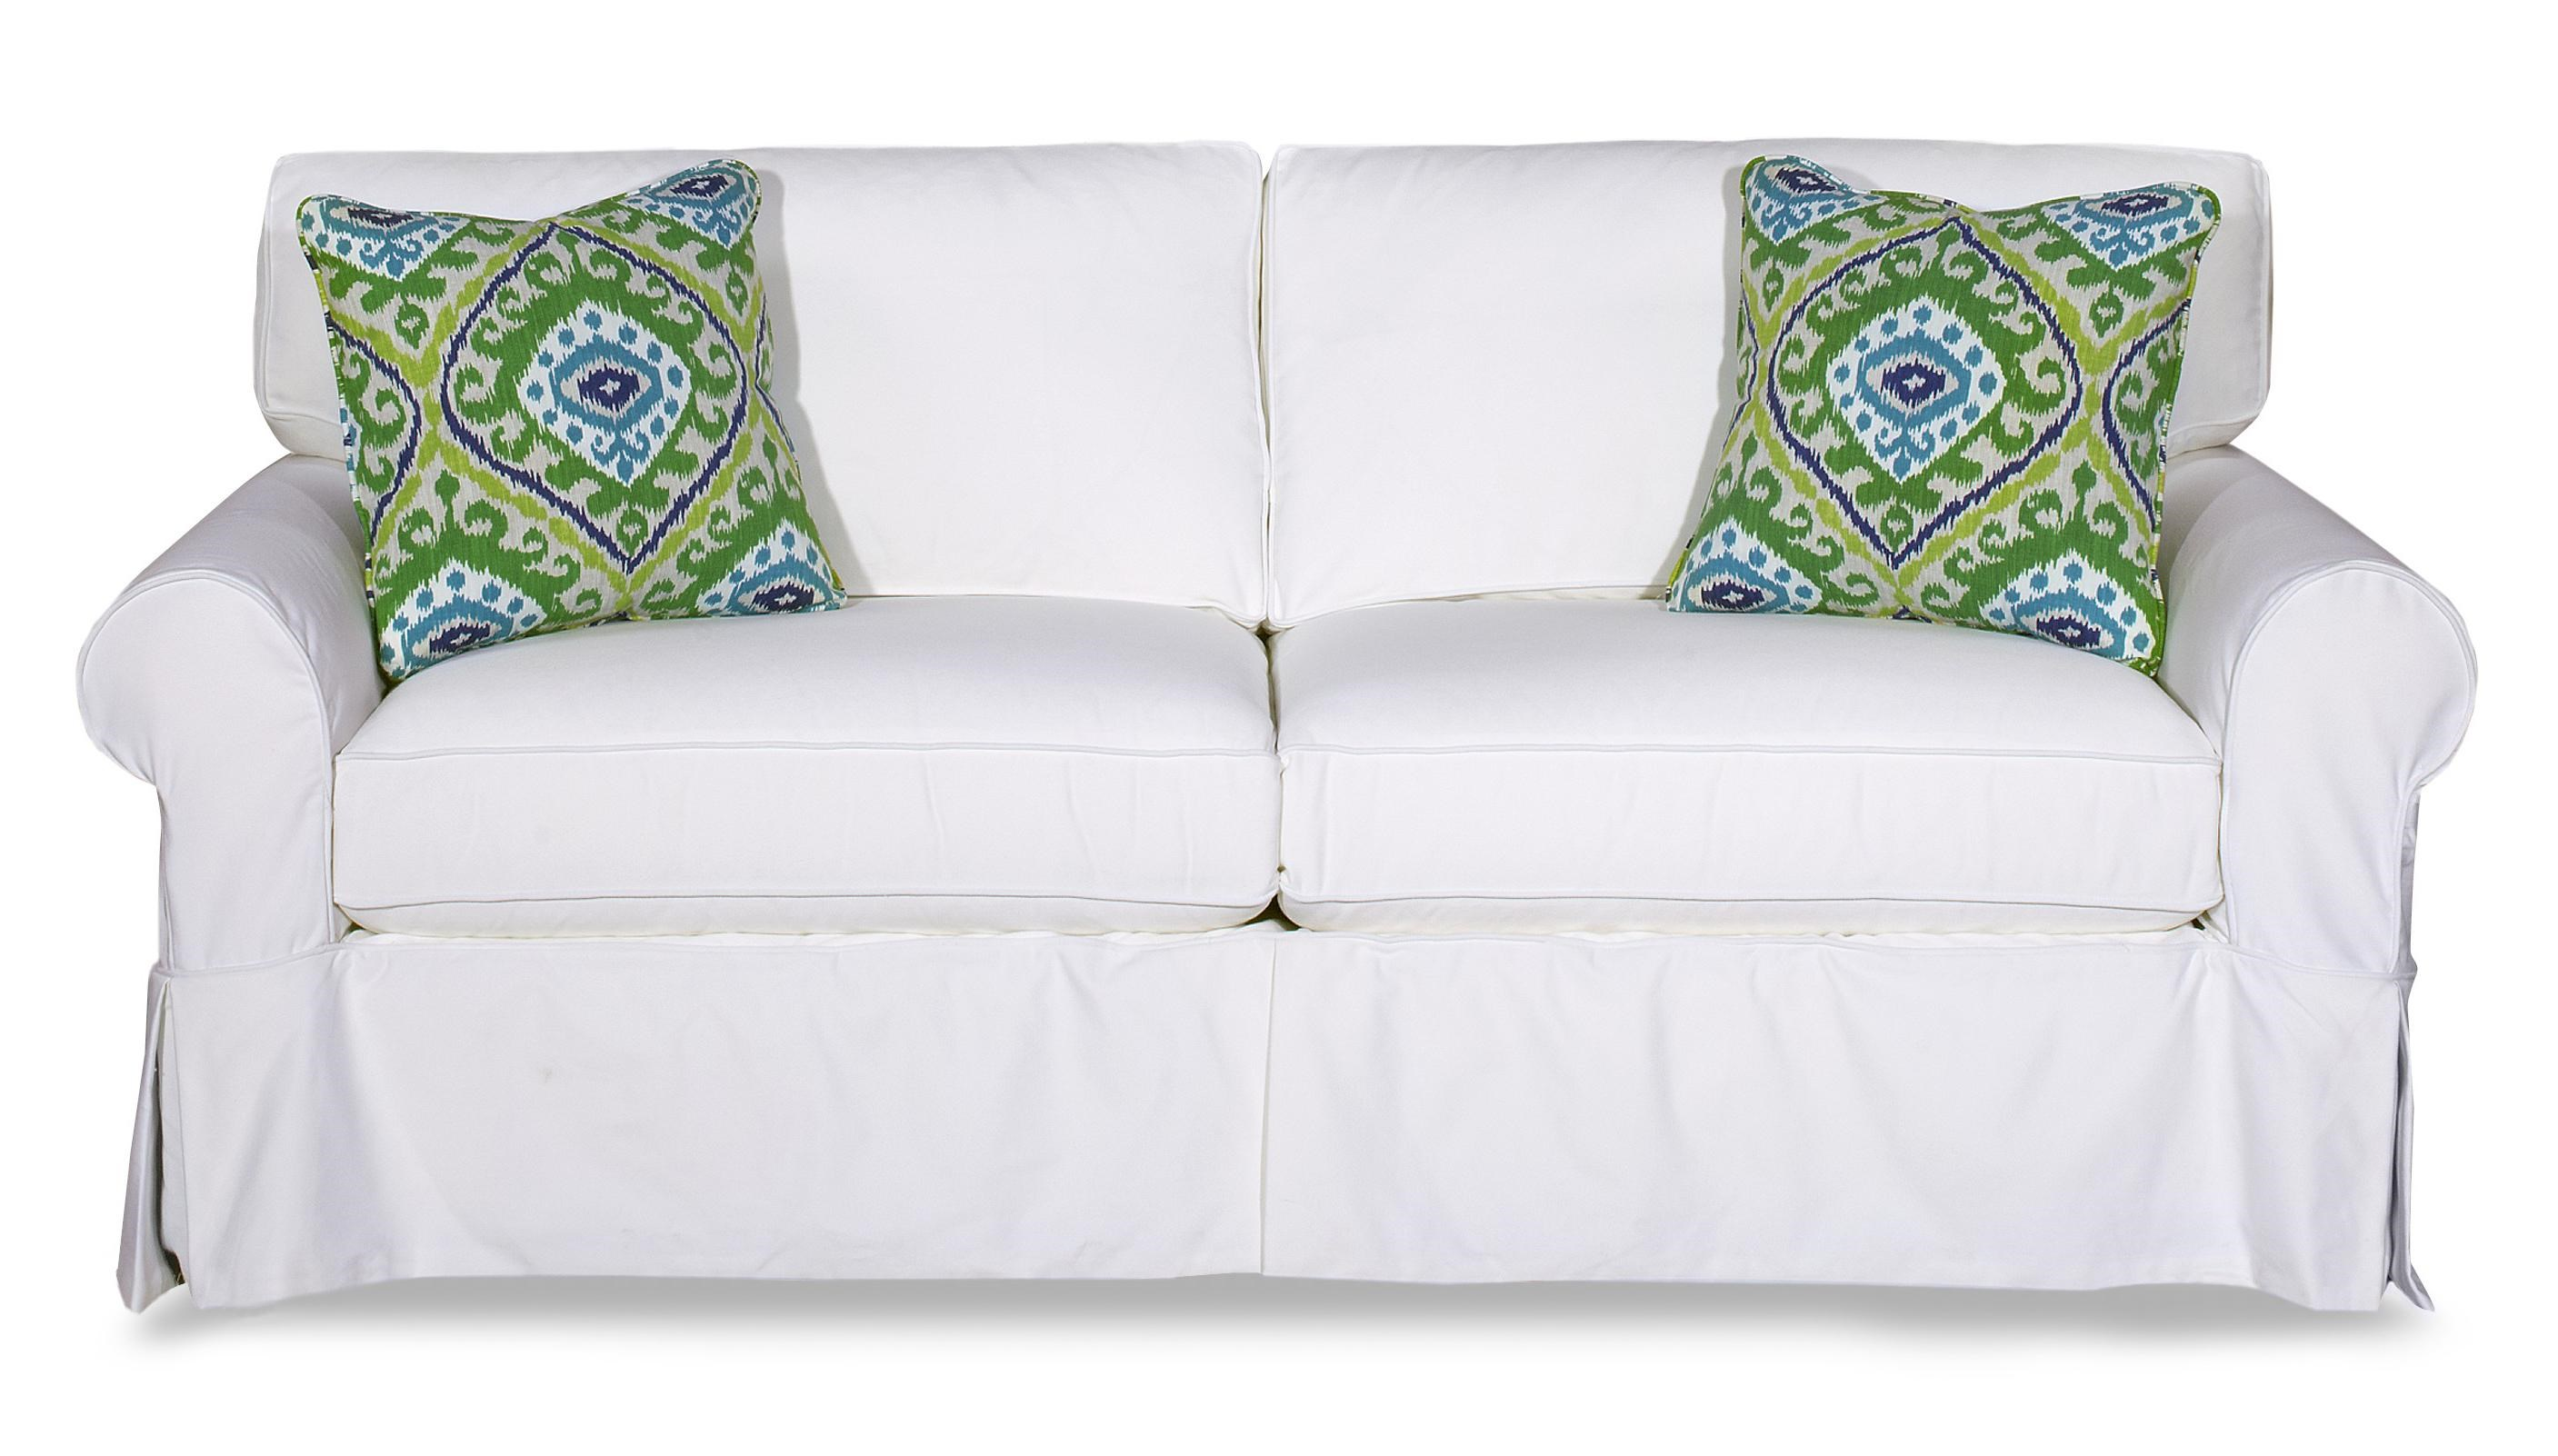 sofa cottage style cottage style sofas striped sofa and